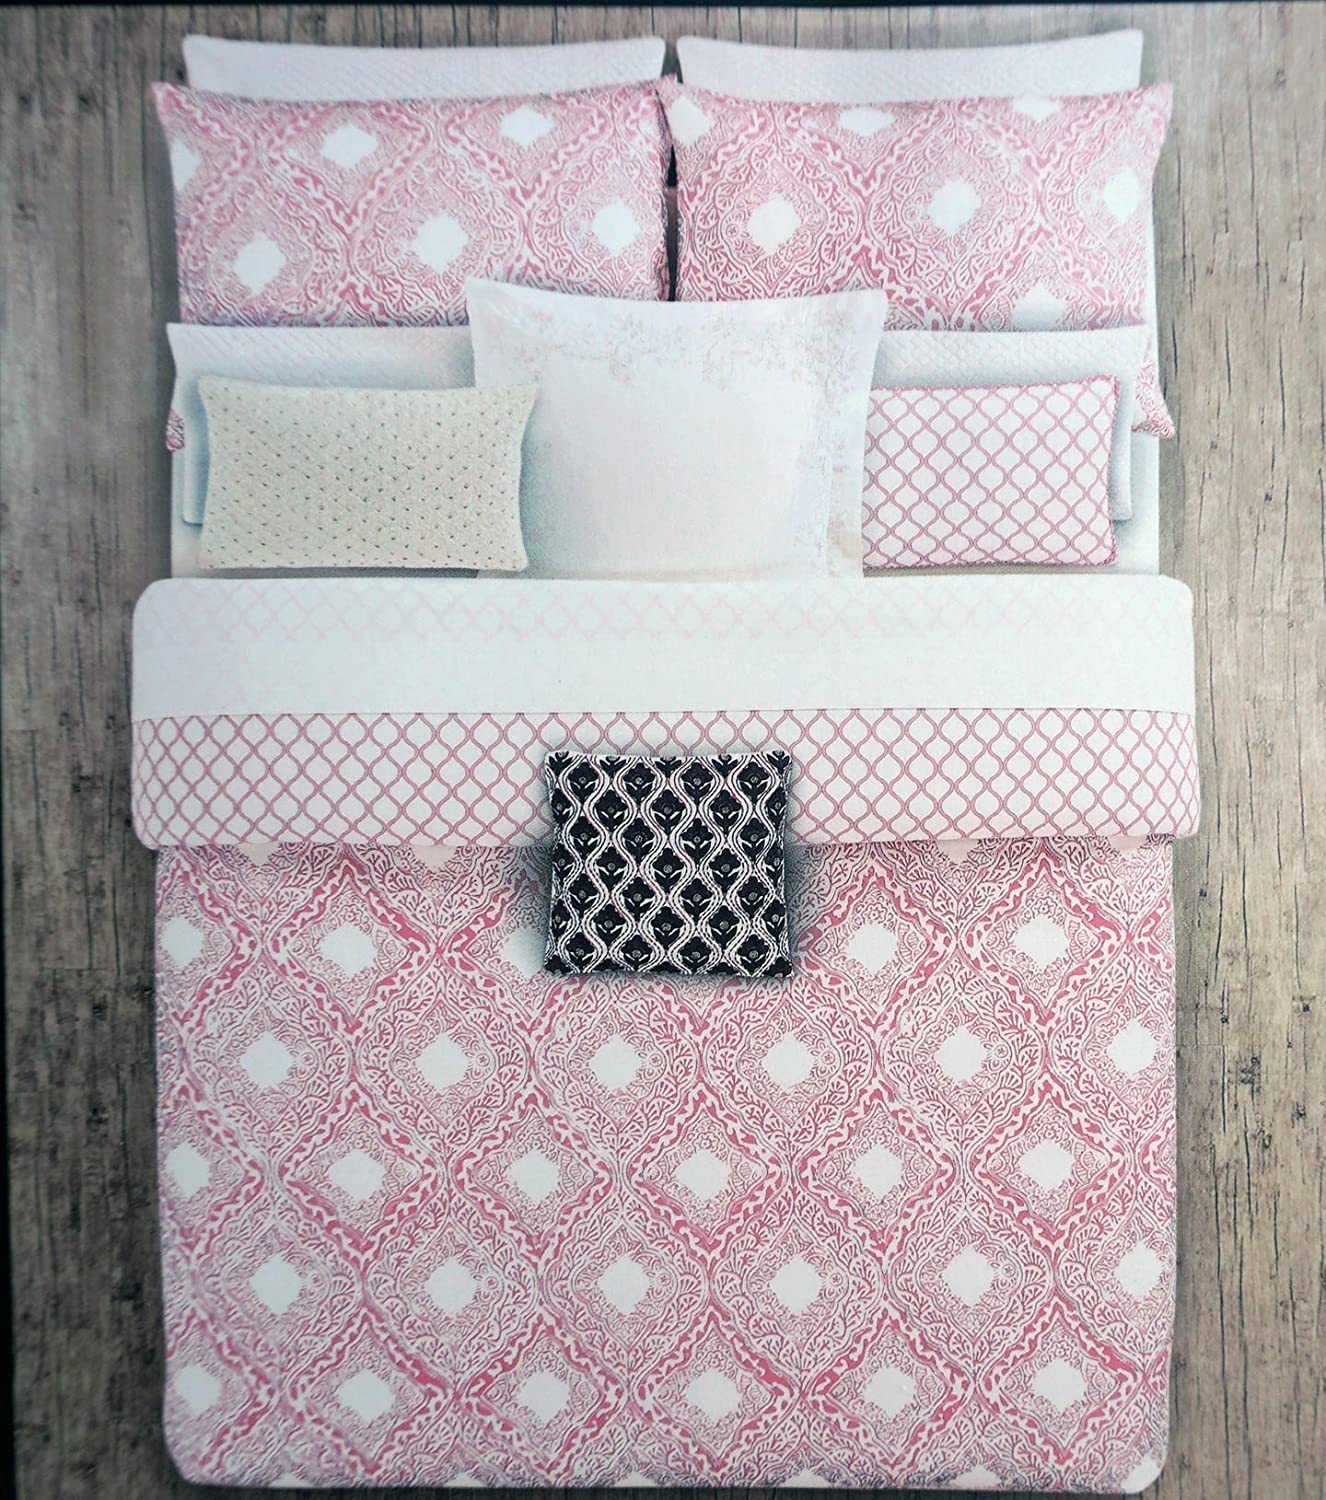 Queen Duvet Cover Set Pink Geometric Medallion Pattern on White Kensie Home 3 Piece Full